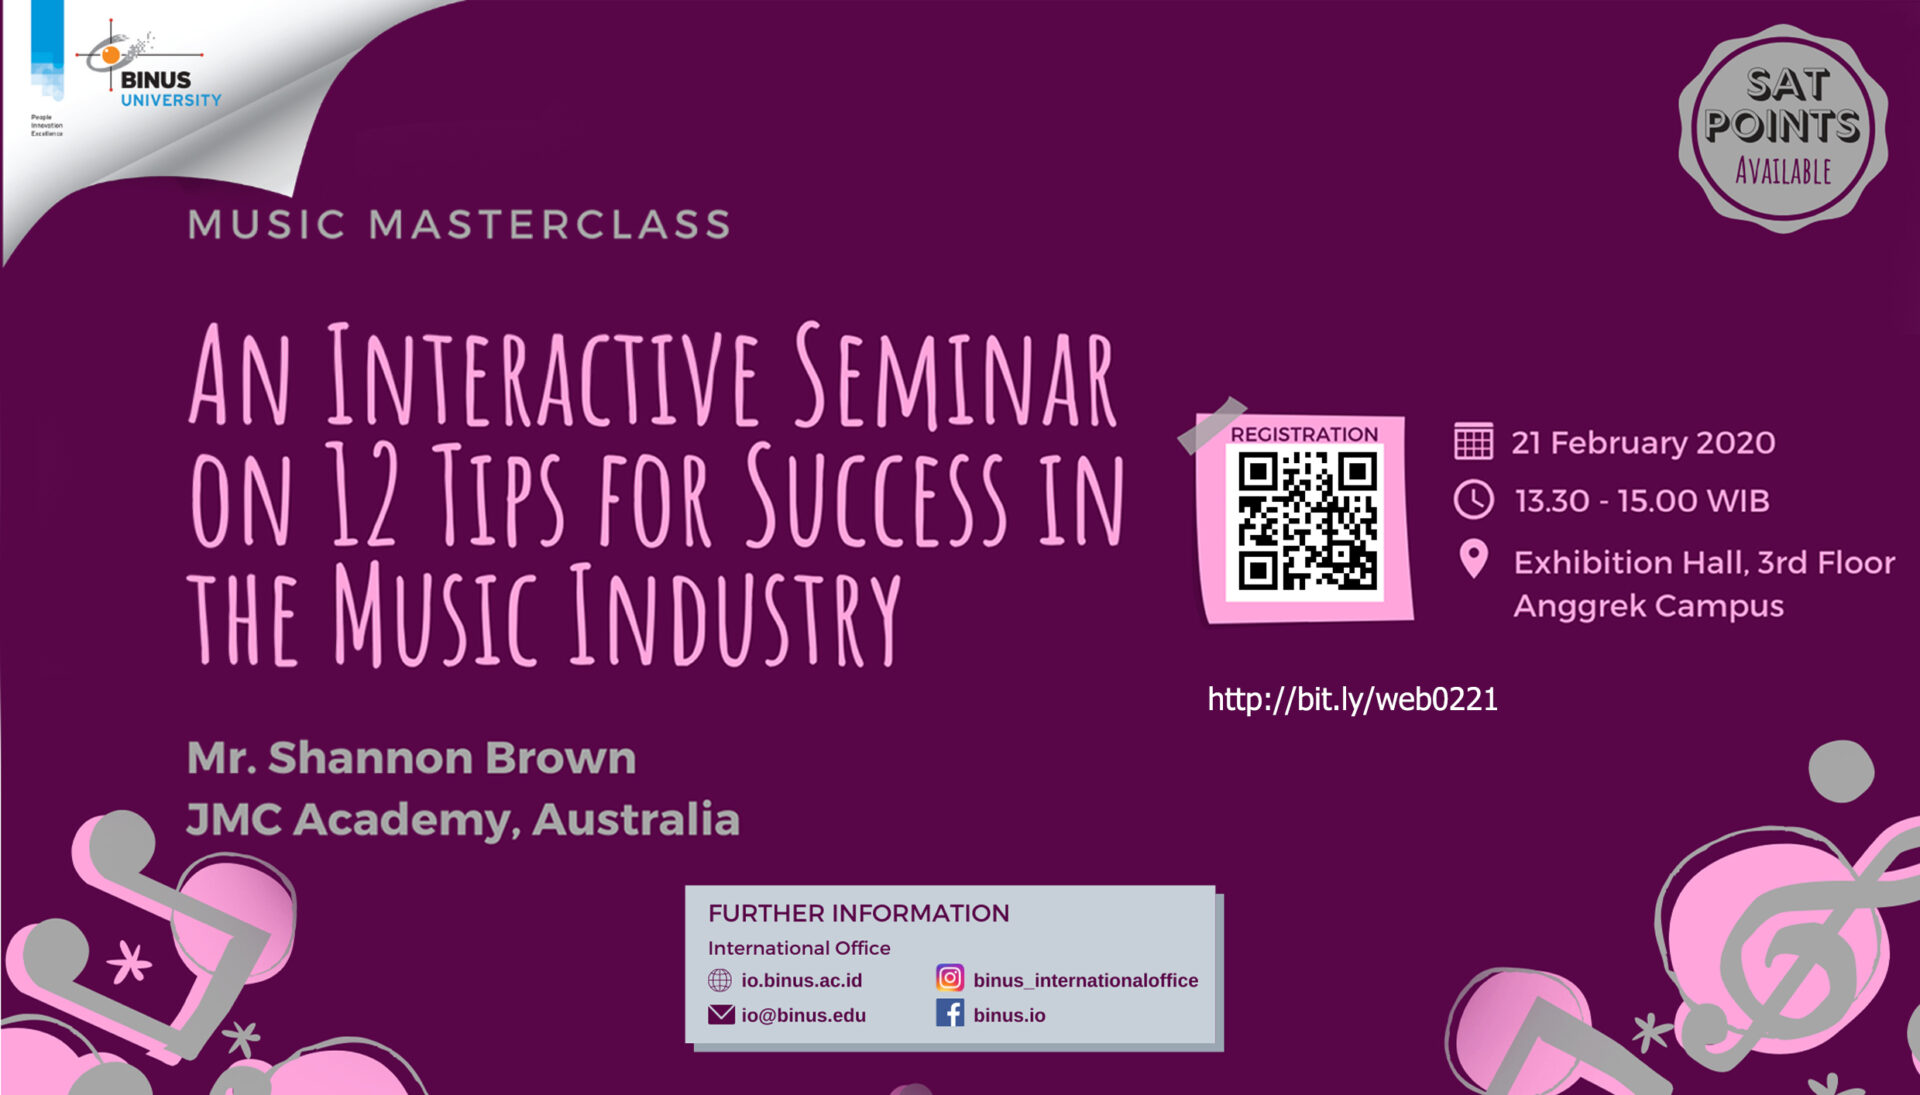 An Interactive Seminar on 12 Tips for Success in the Music Industry Gallery